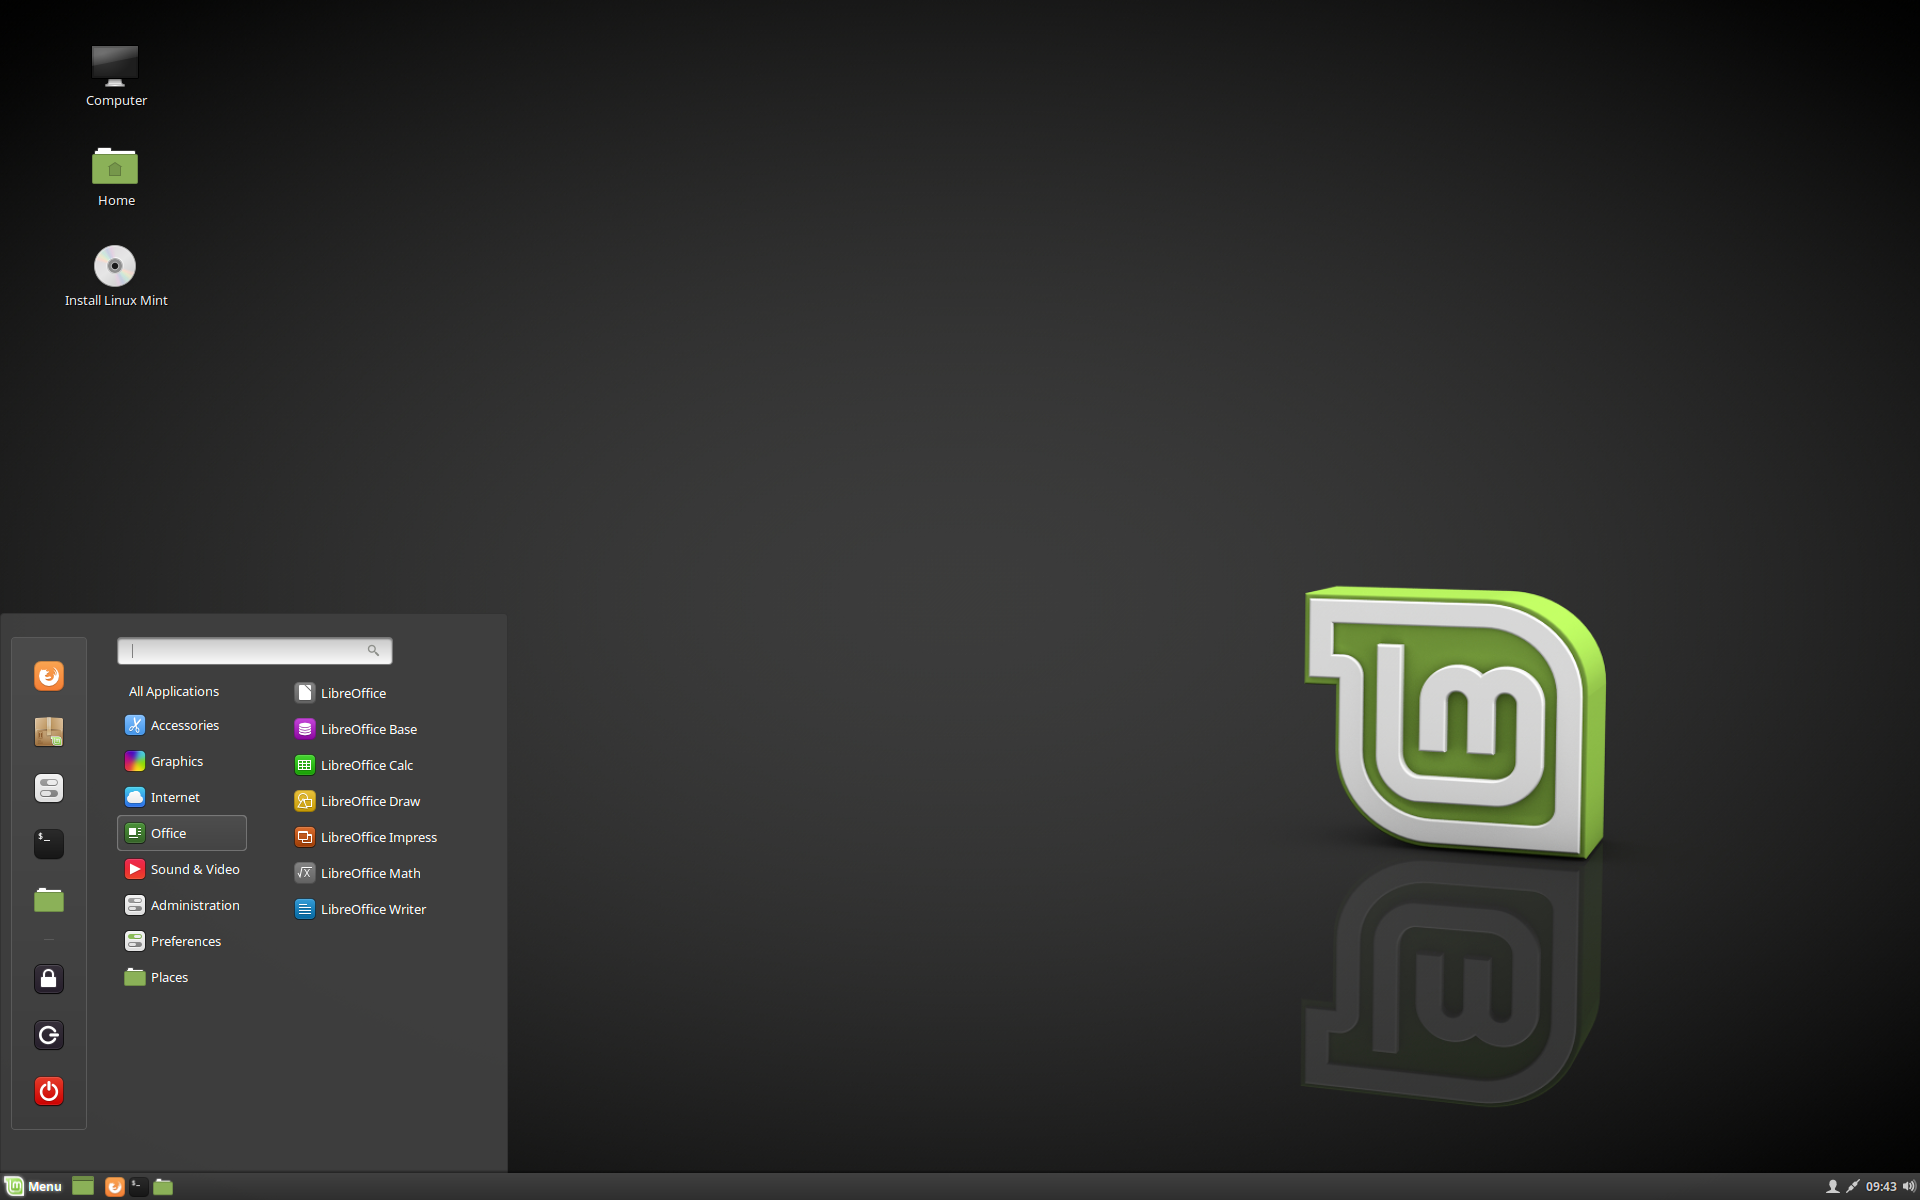 New features in Linux Mint 18 3 Cinnamon - Linux Mint